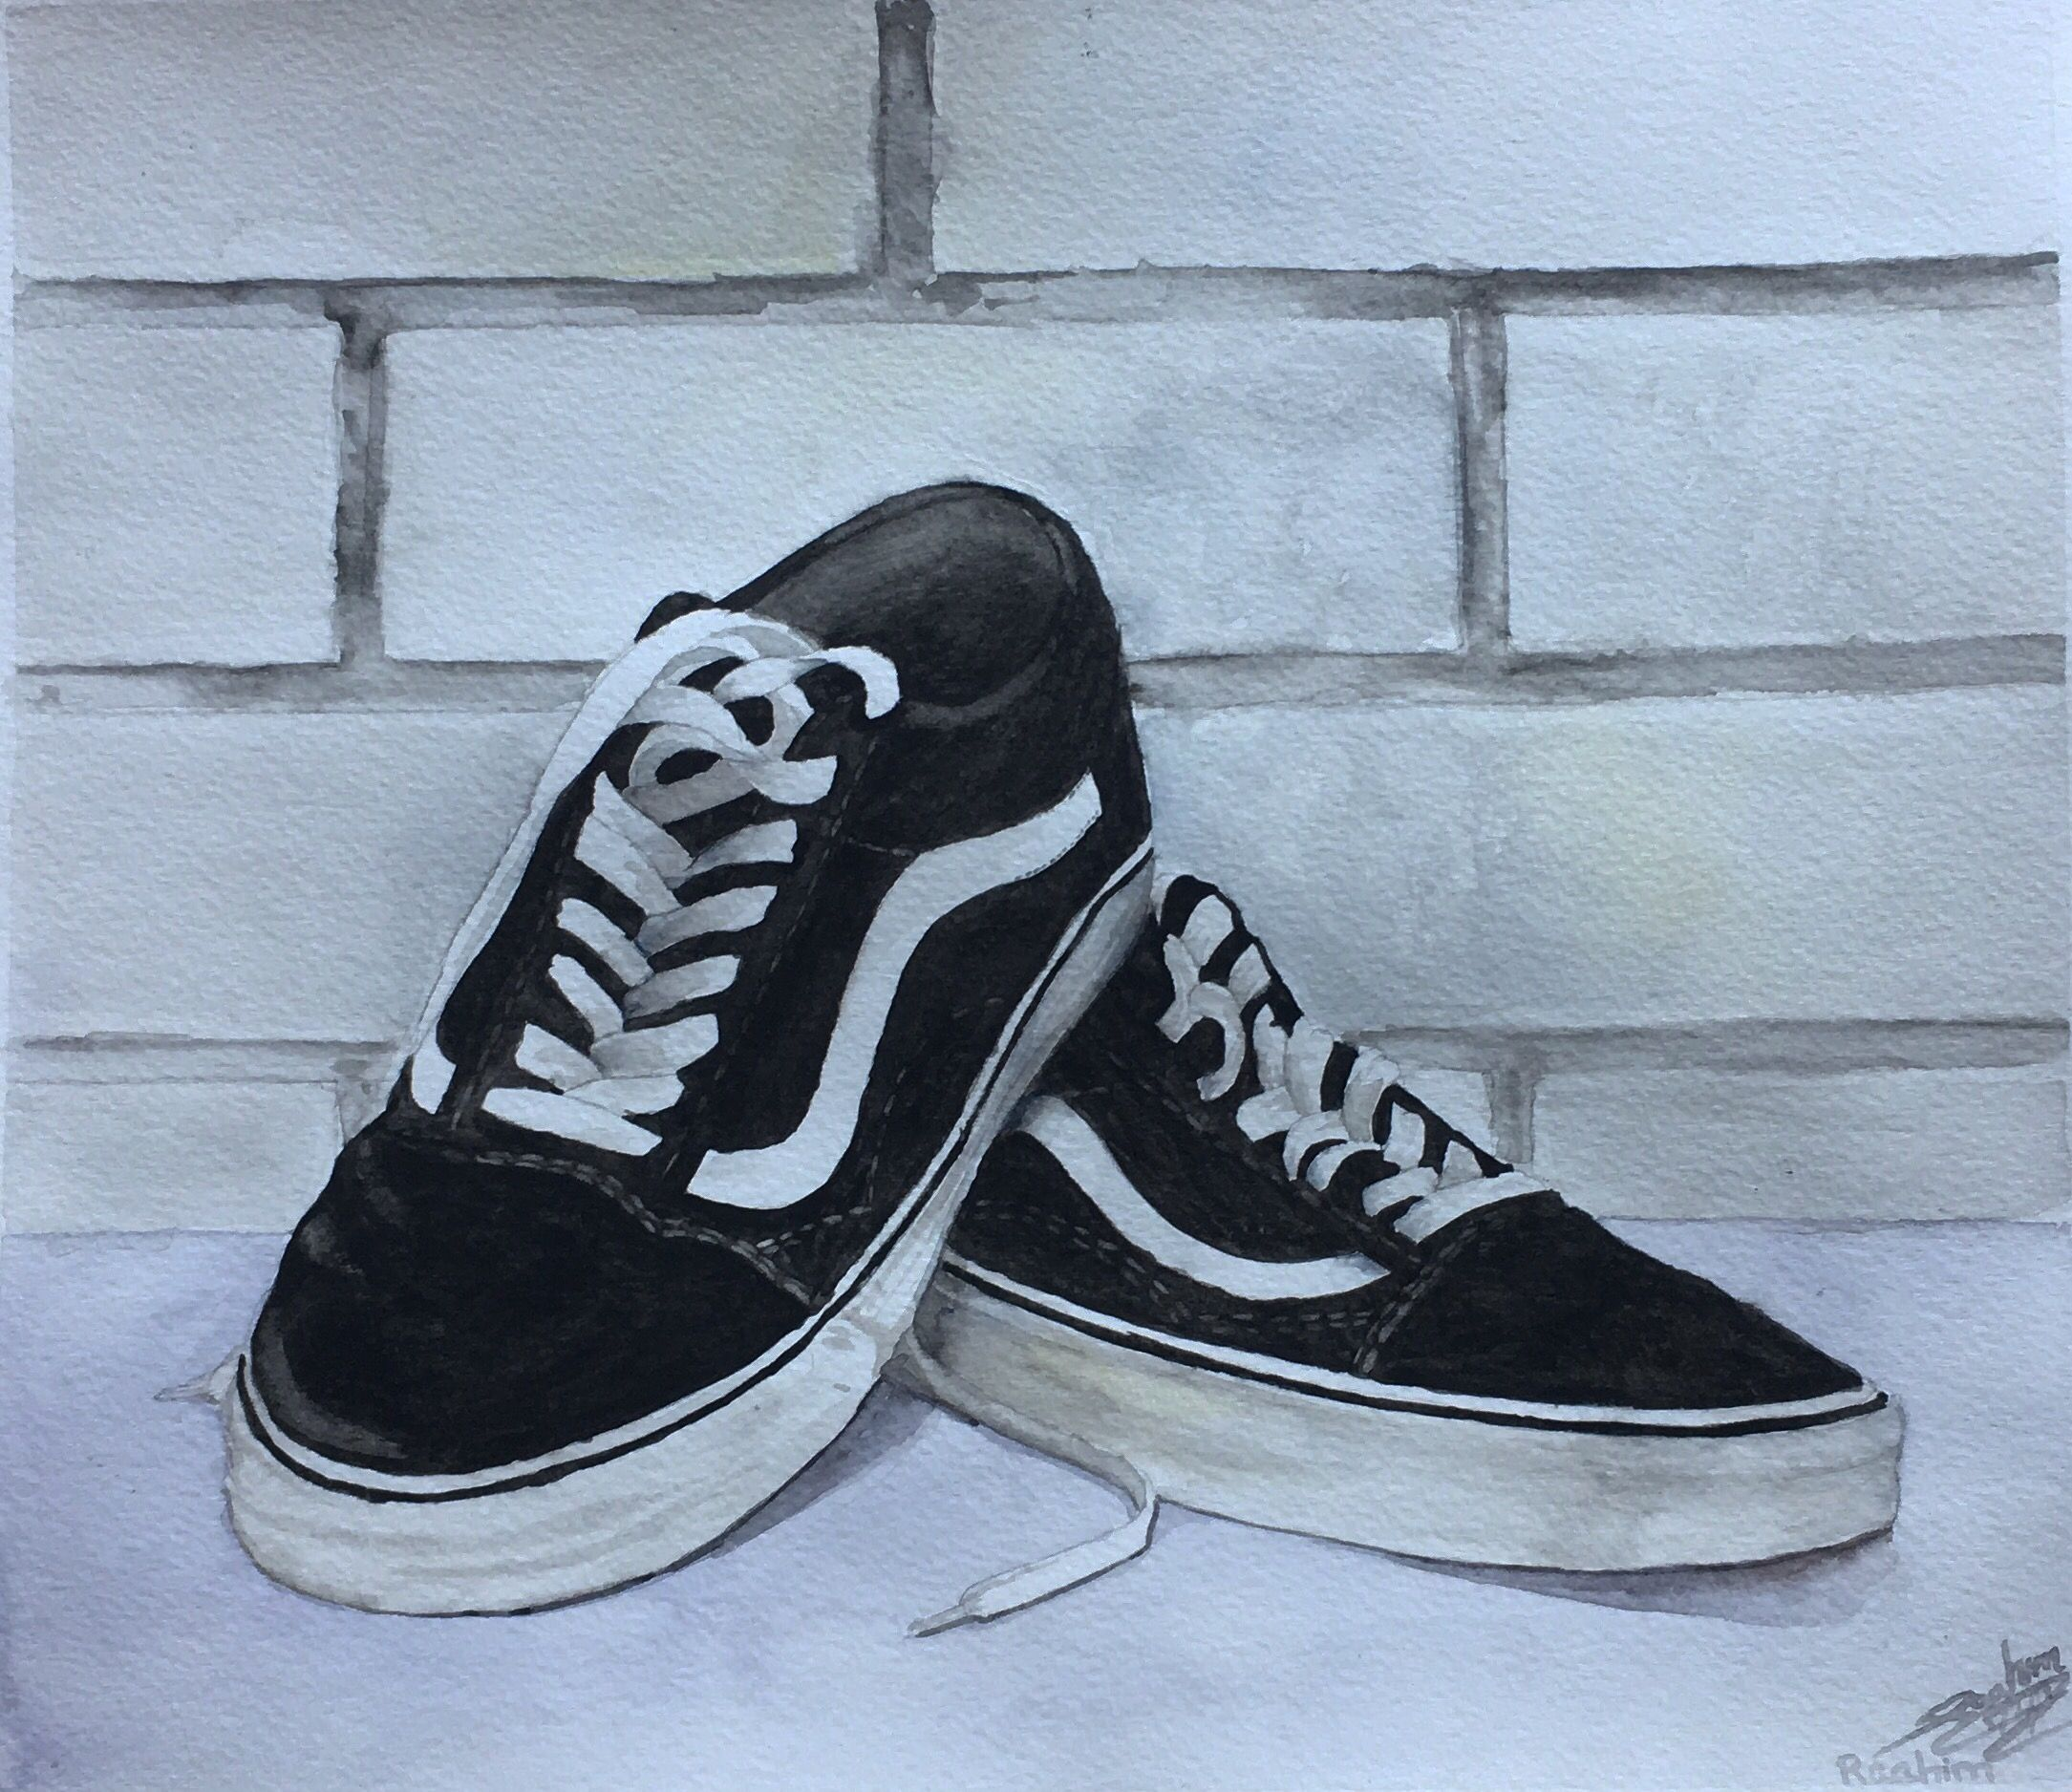 Watercolor vans off the wall